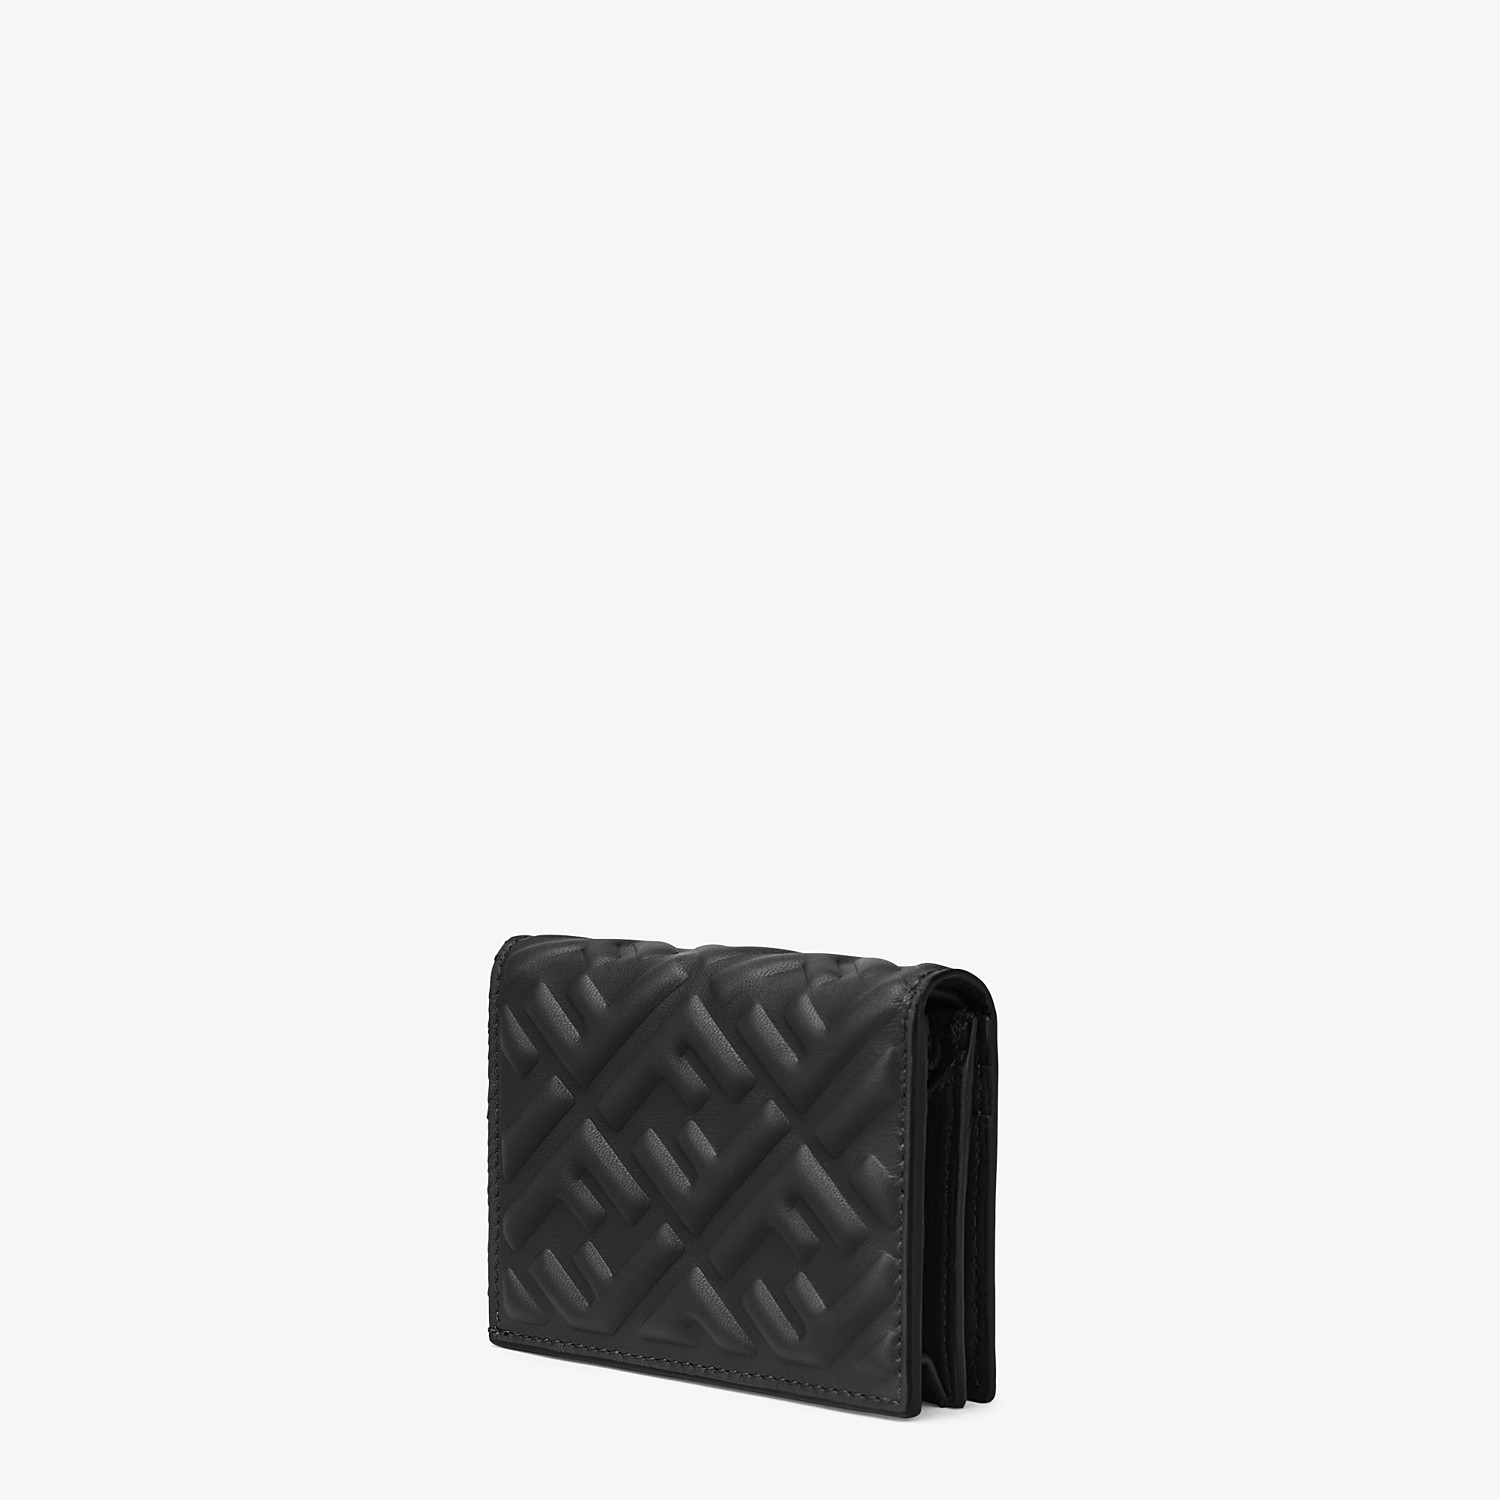 FENDI SMALL WALLET - Black nappa leather wallet - view 2 detail